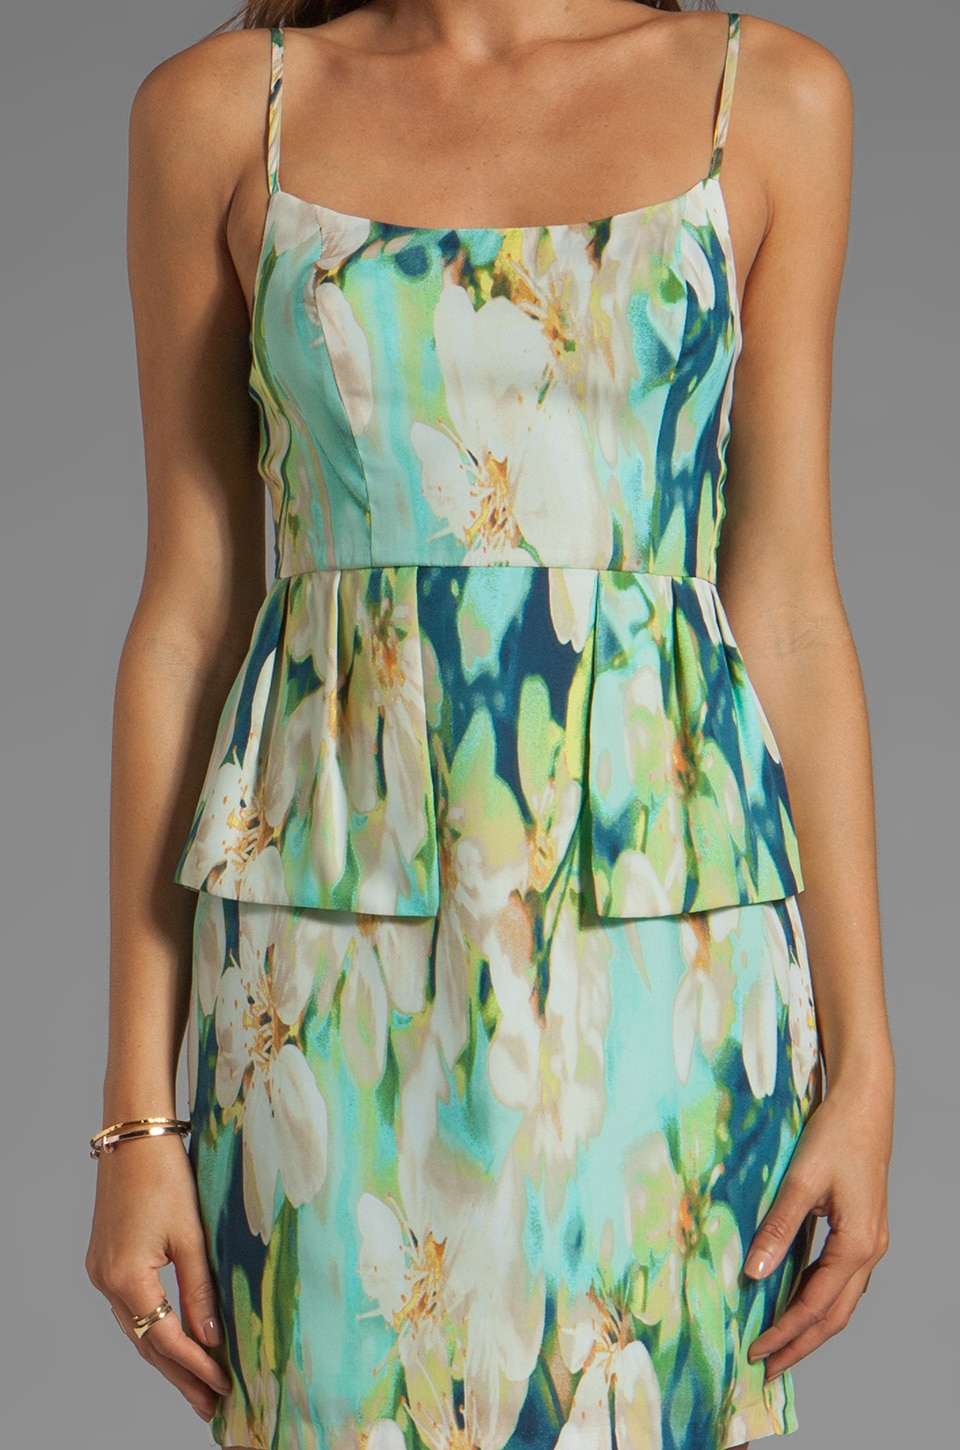 BB Dakota Debralyn Palm Beach Printed Dress in Mint Julep